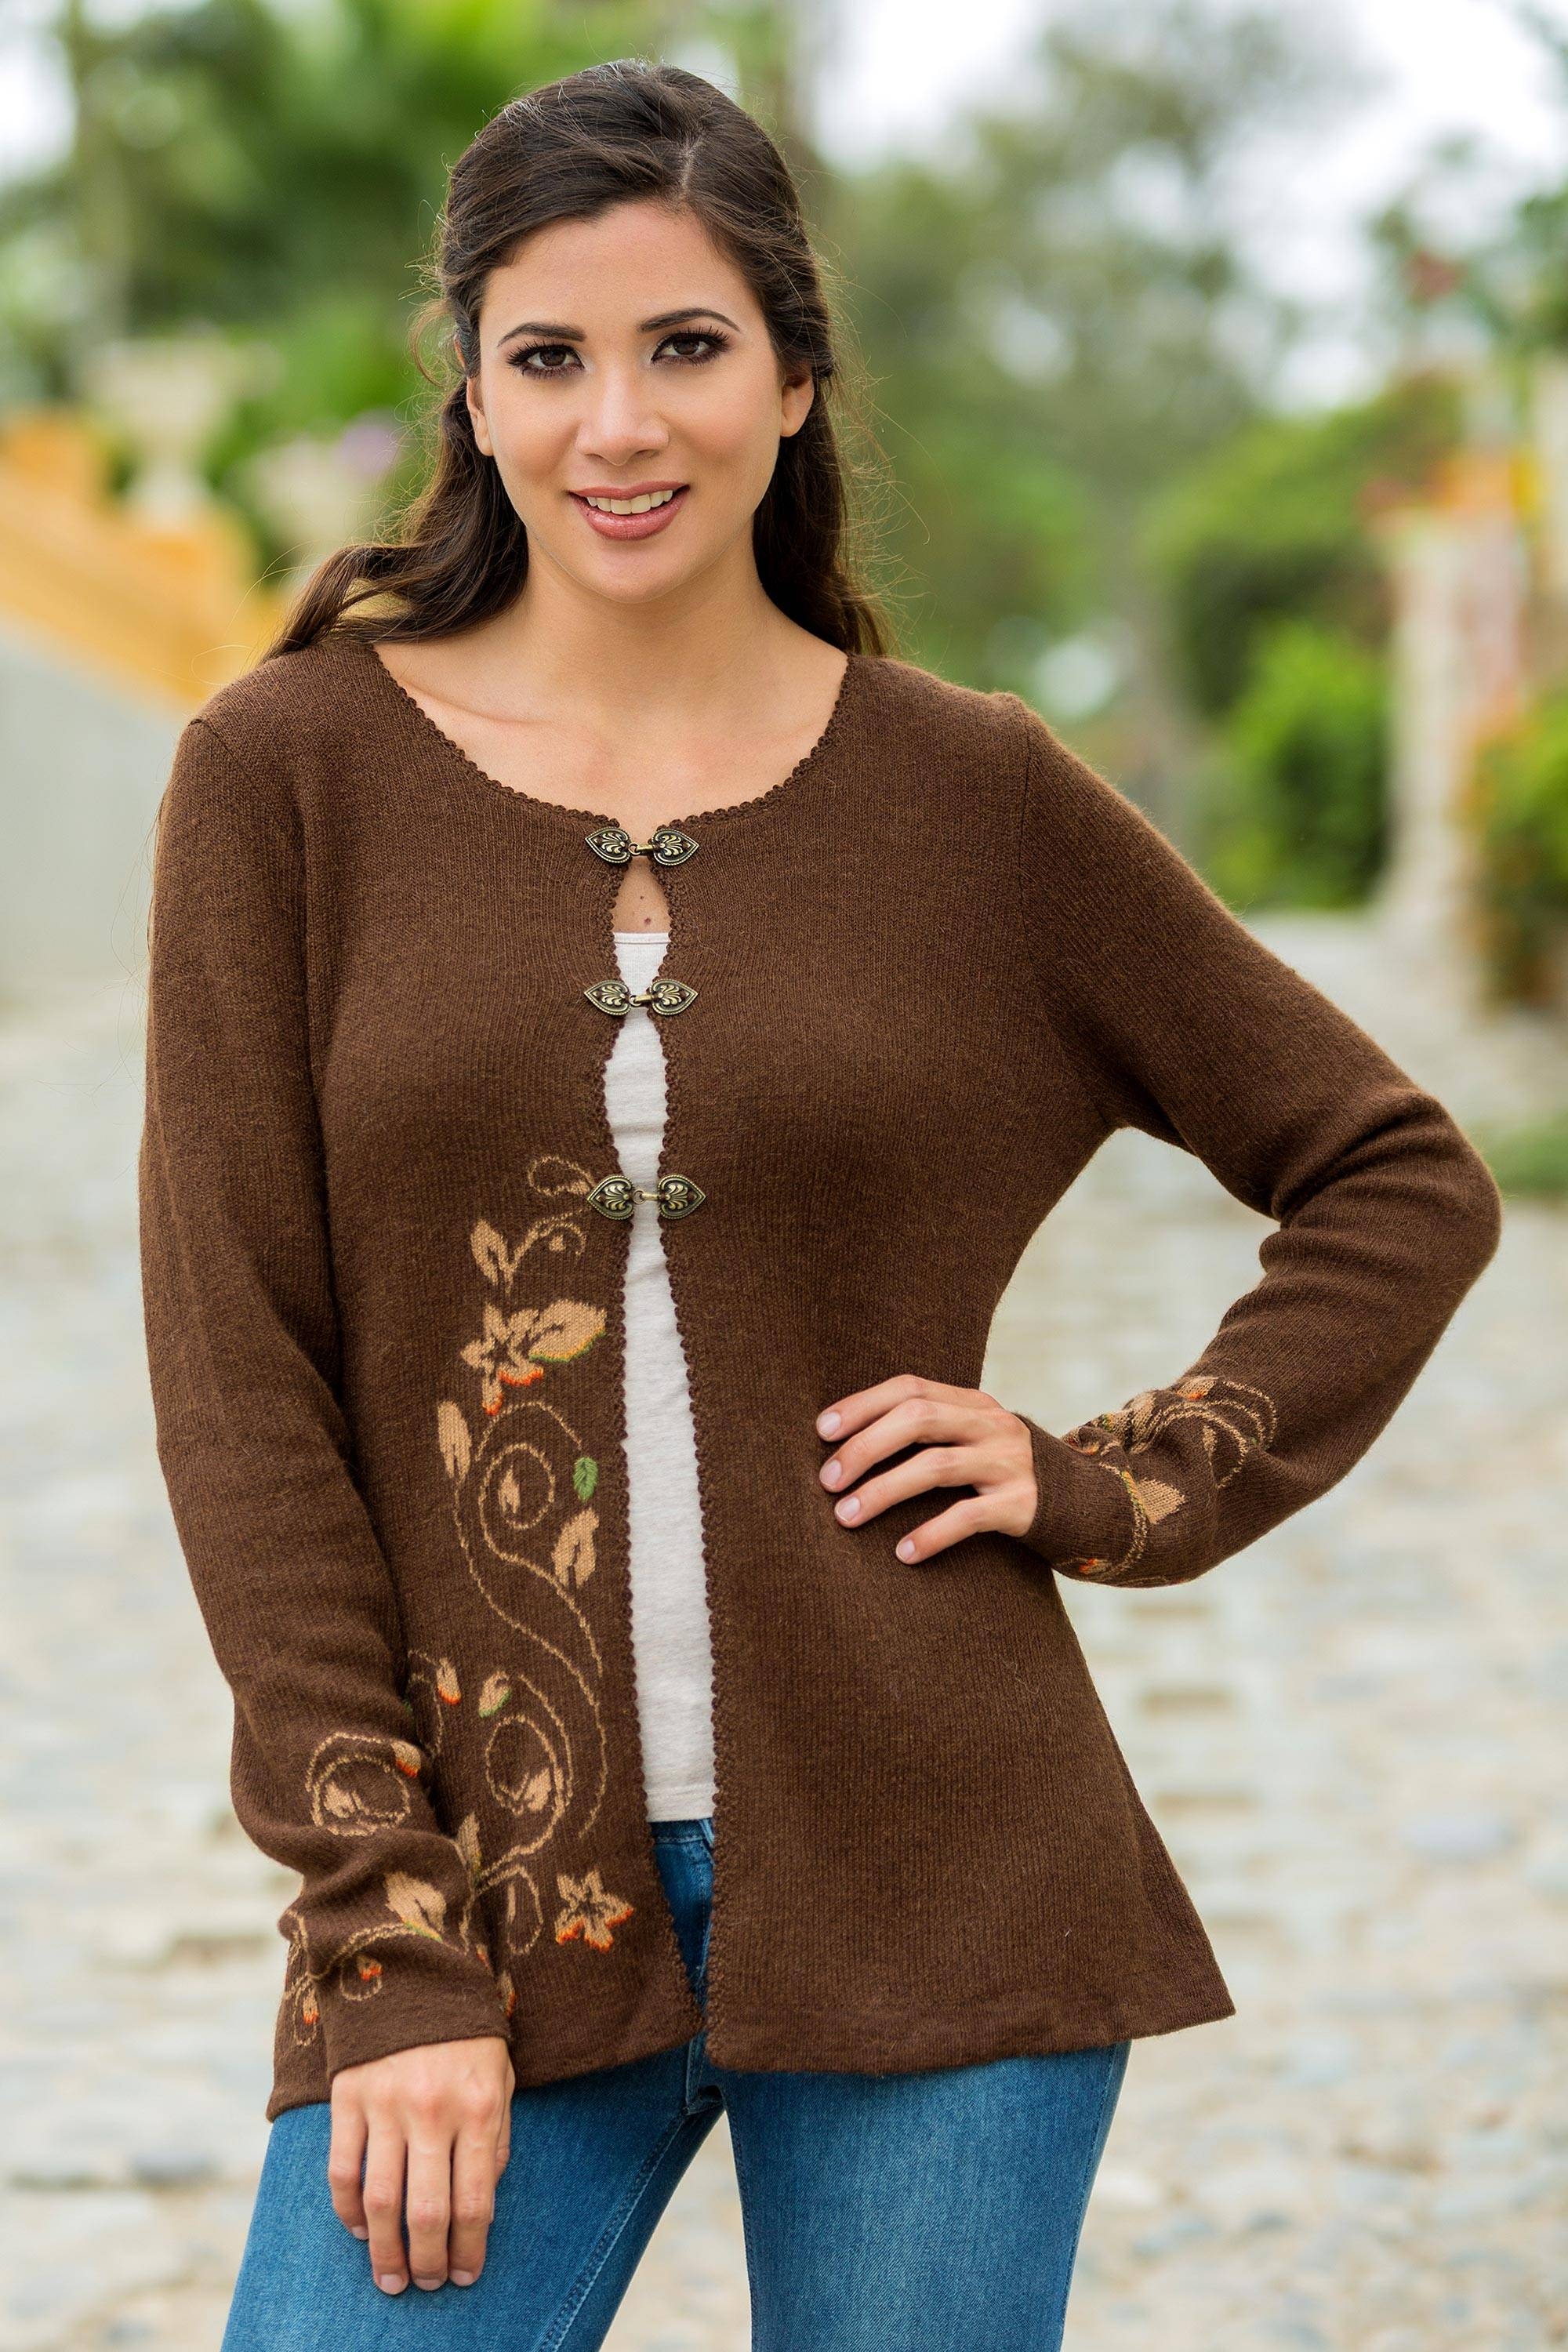 Floral Women Wool for Alpaca Chocolate Baby Dressy Cardigan Brown Honeysuckle qwxSYt4